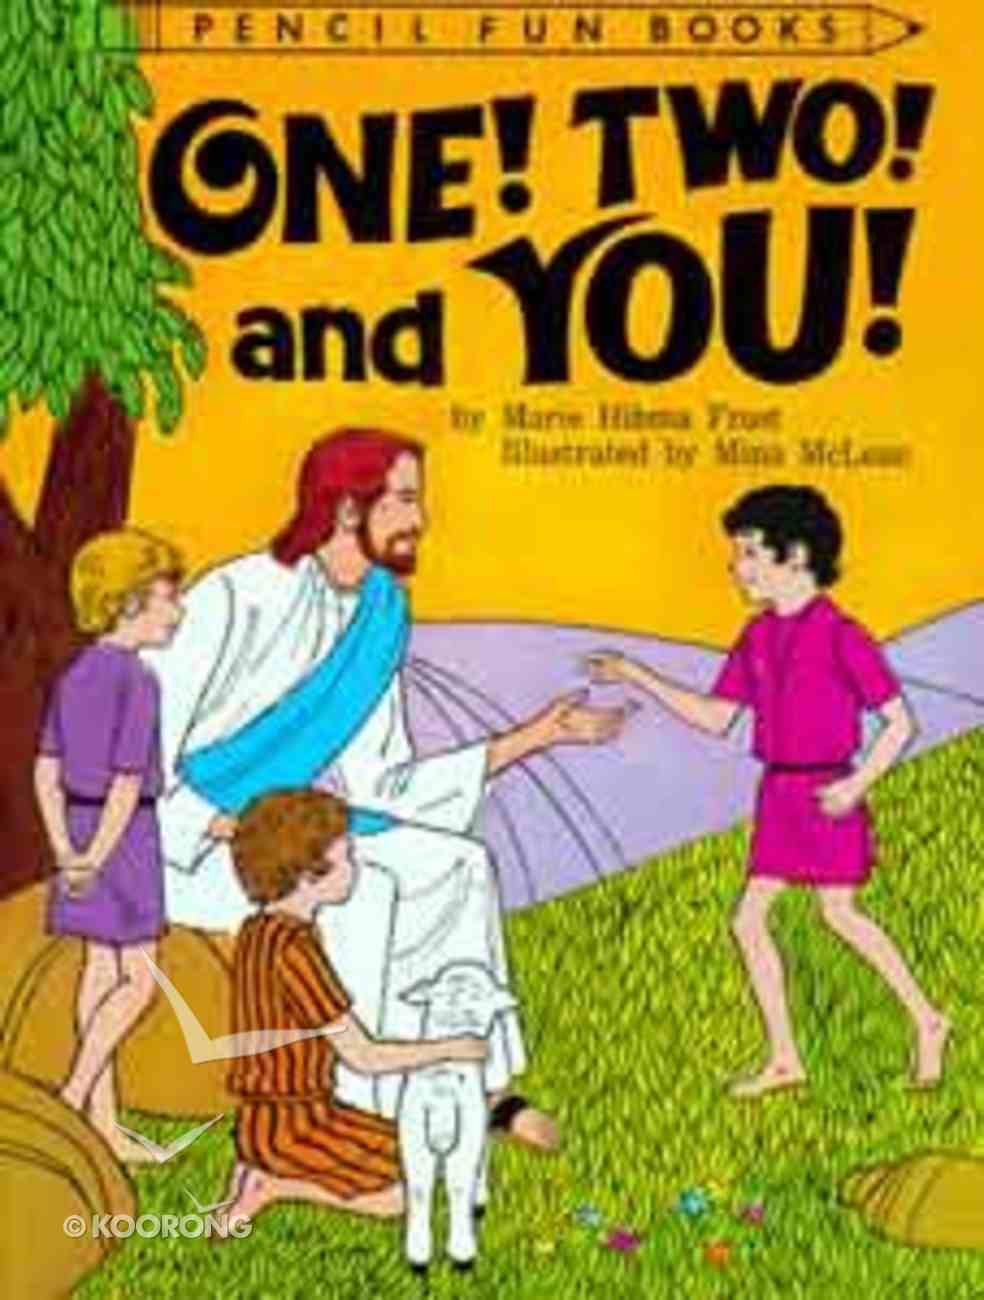 One! Two! and You (Pencil Fun Books Series) Paperback